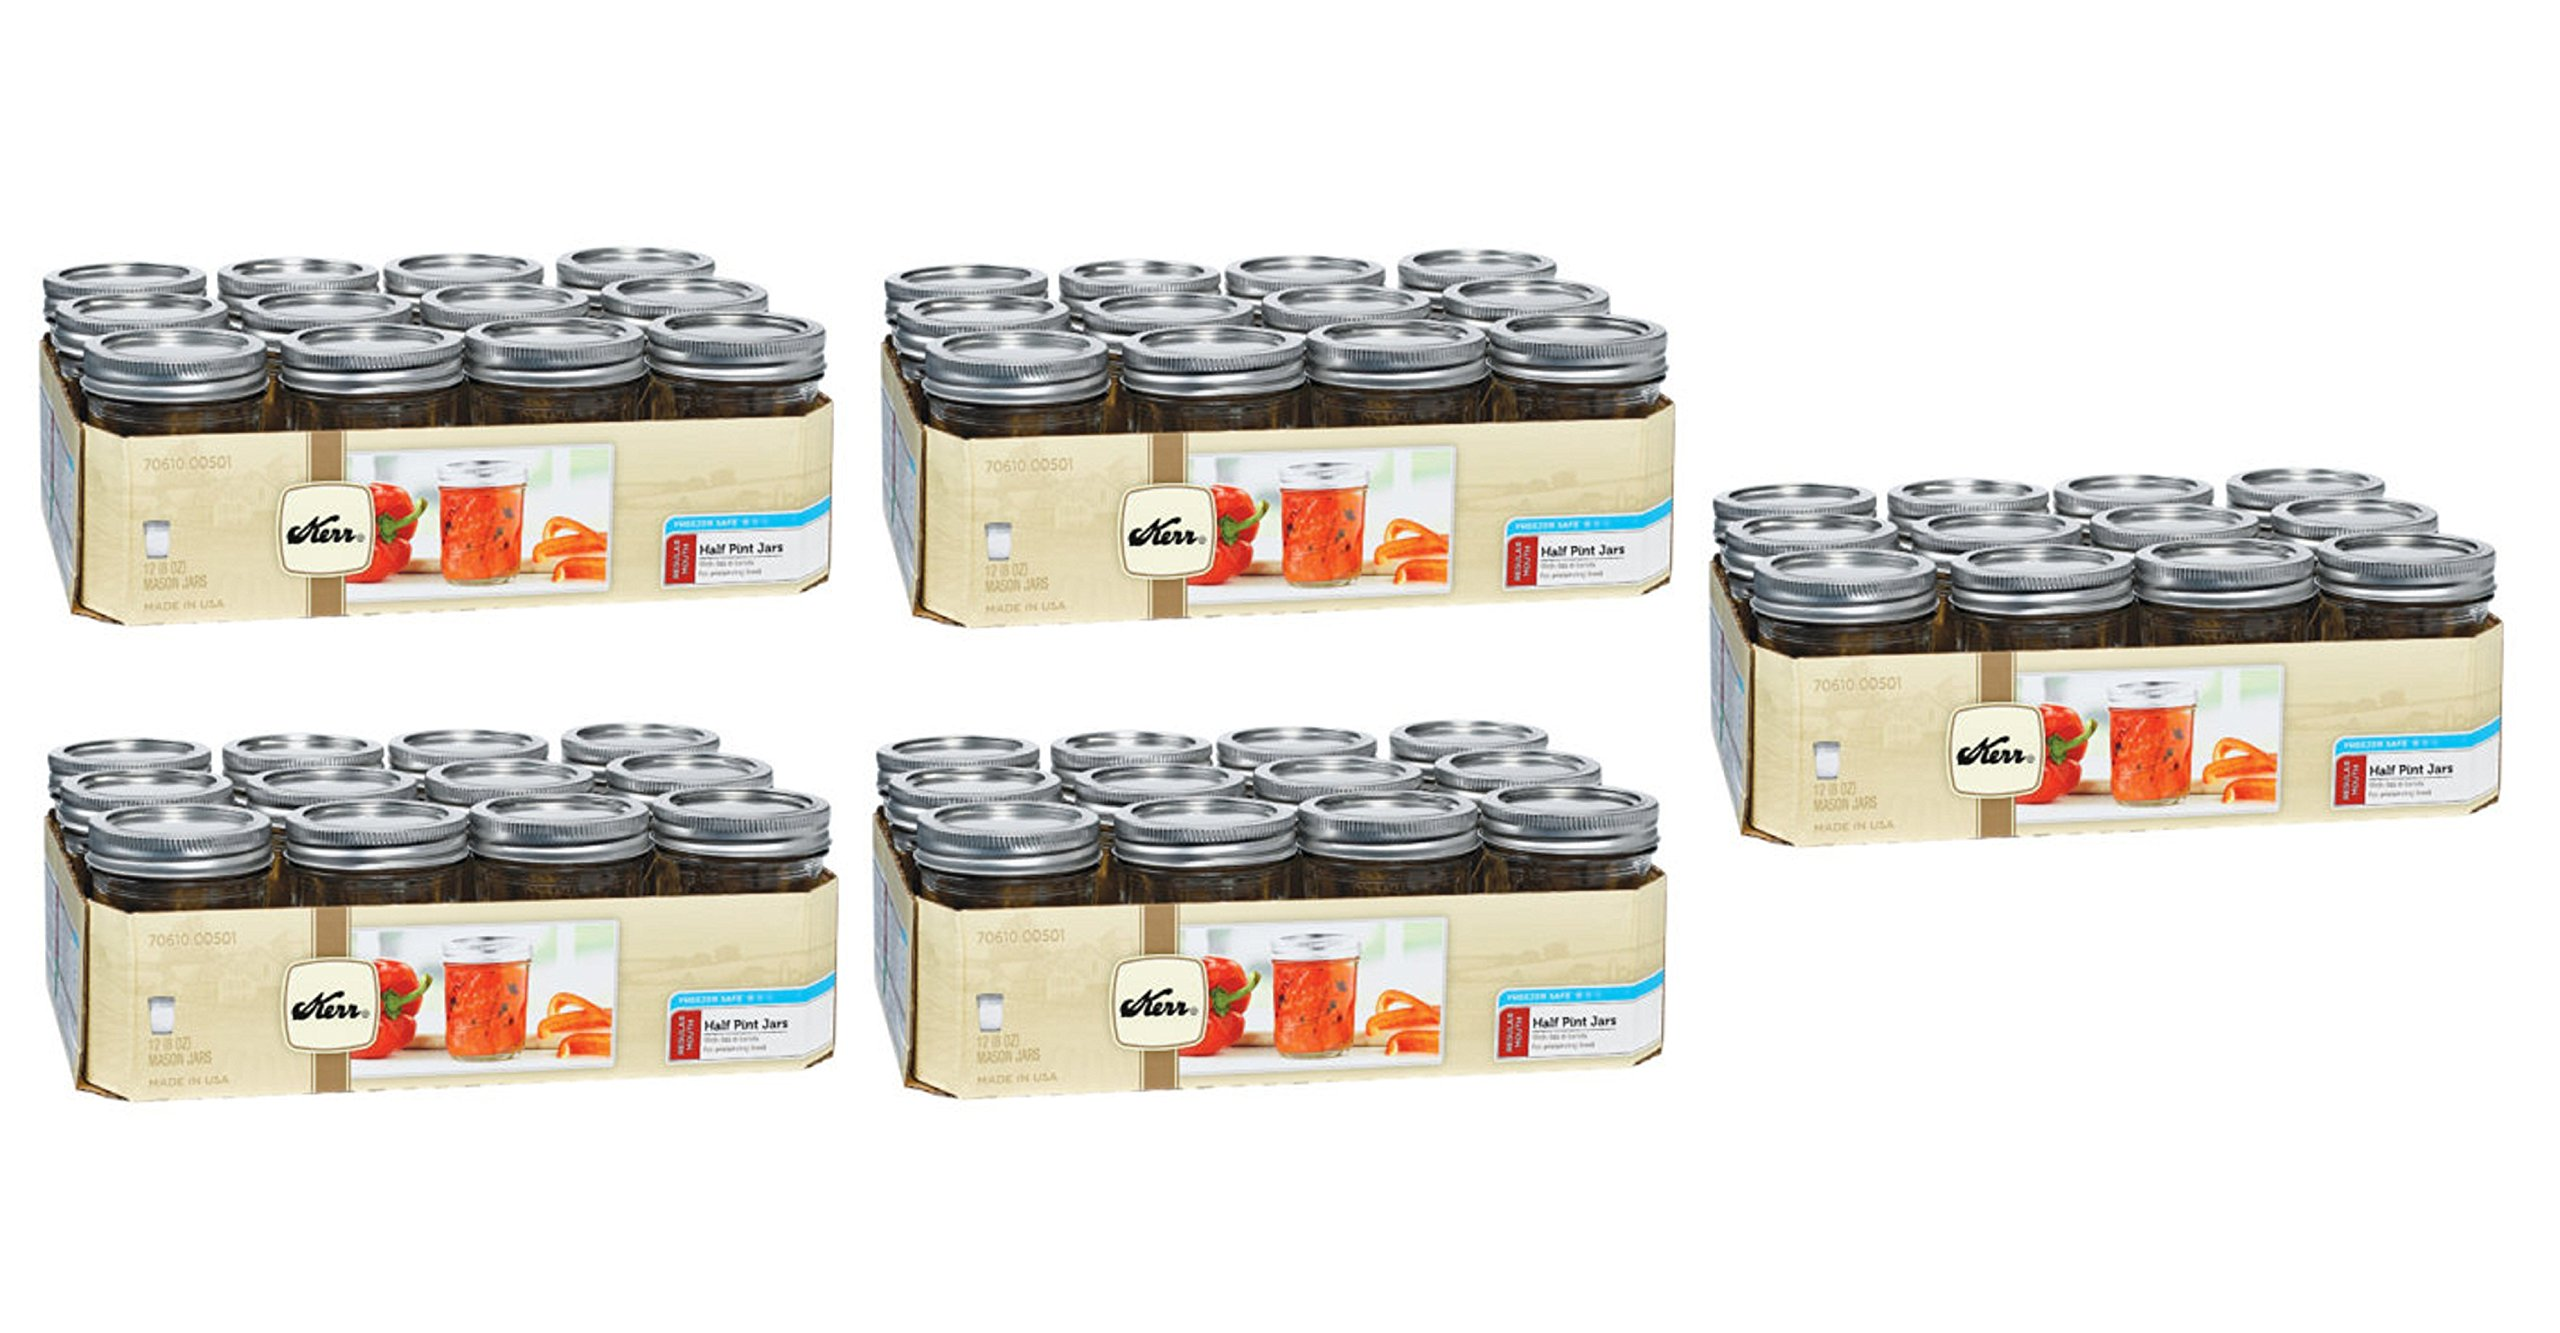 Kerr 1/2 8oz Pint Regular Mouth 12 Pieces Jars (5 Pack) Made in USA